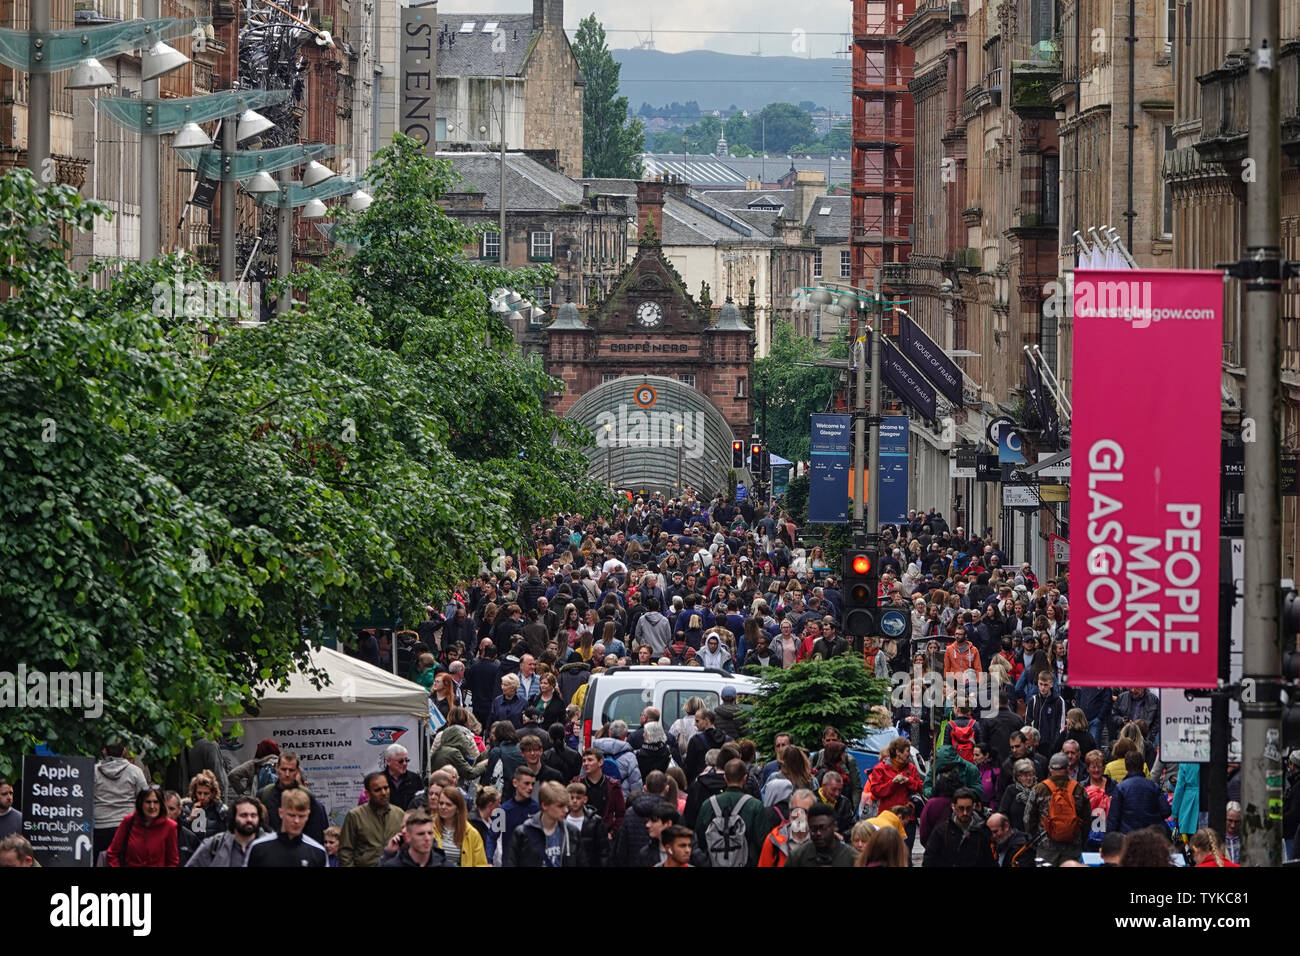 Glasgow, Scotland - June 8, 2019: The famous shopping district in the city, Buchanan Street, is shown filled with people during an afternoon day. Stock Photo